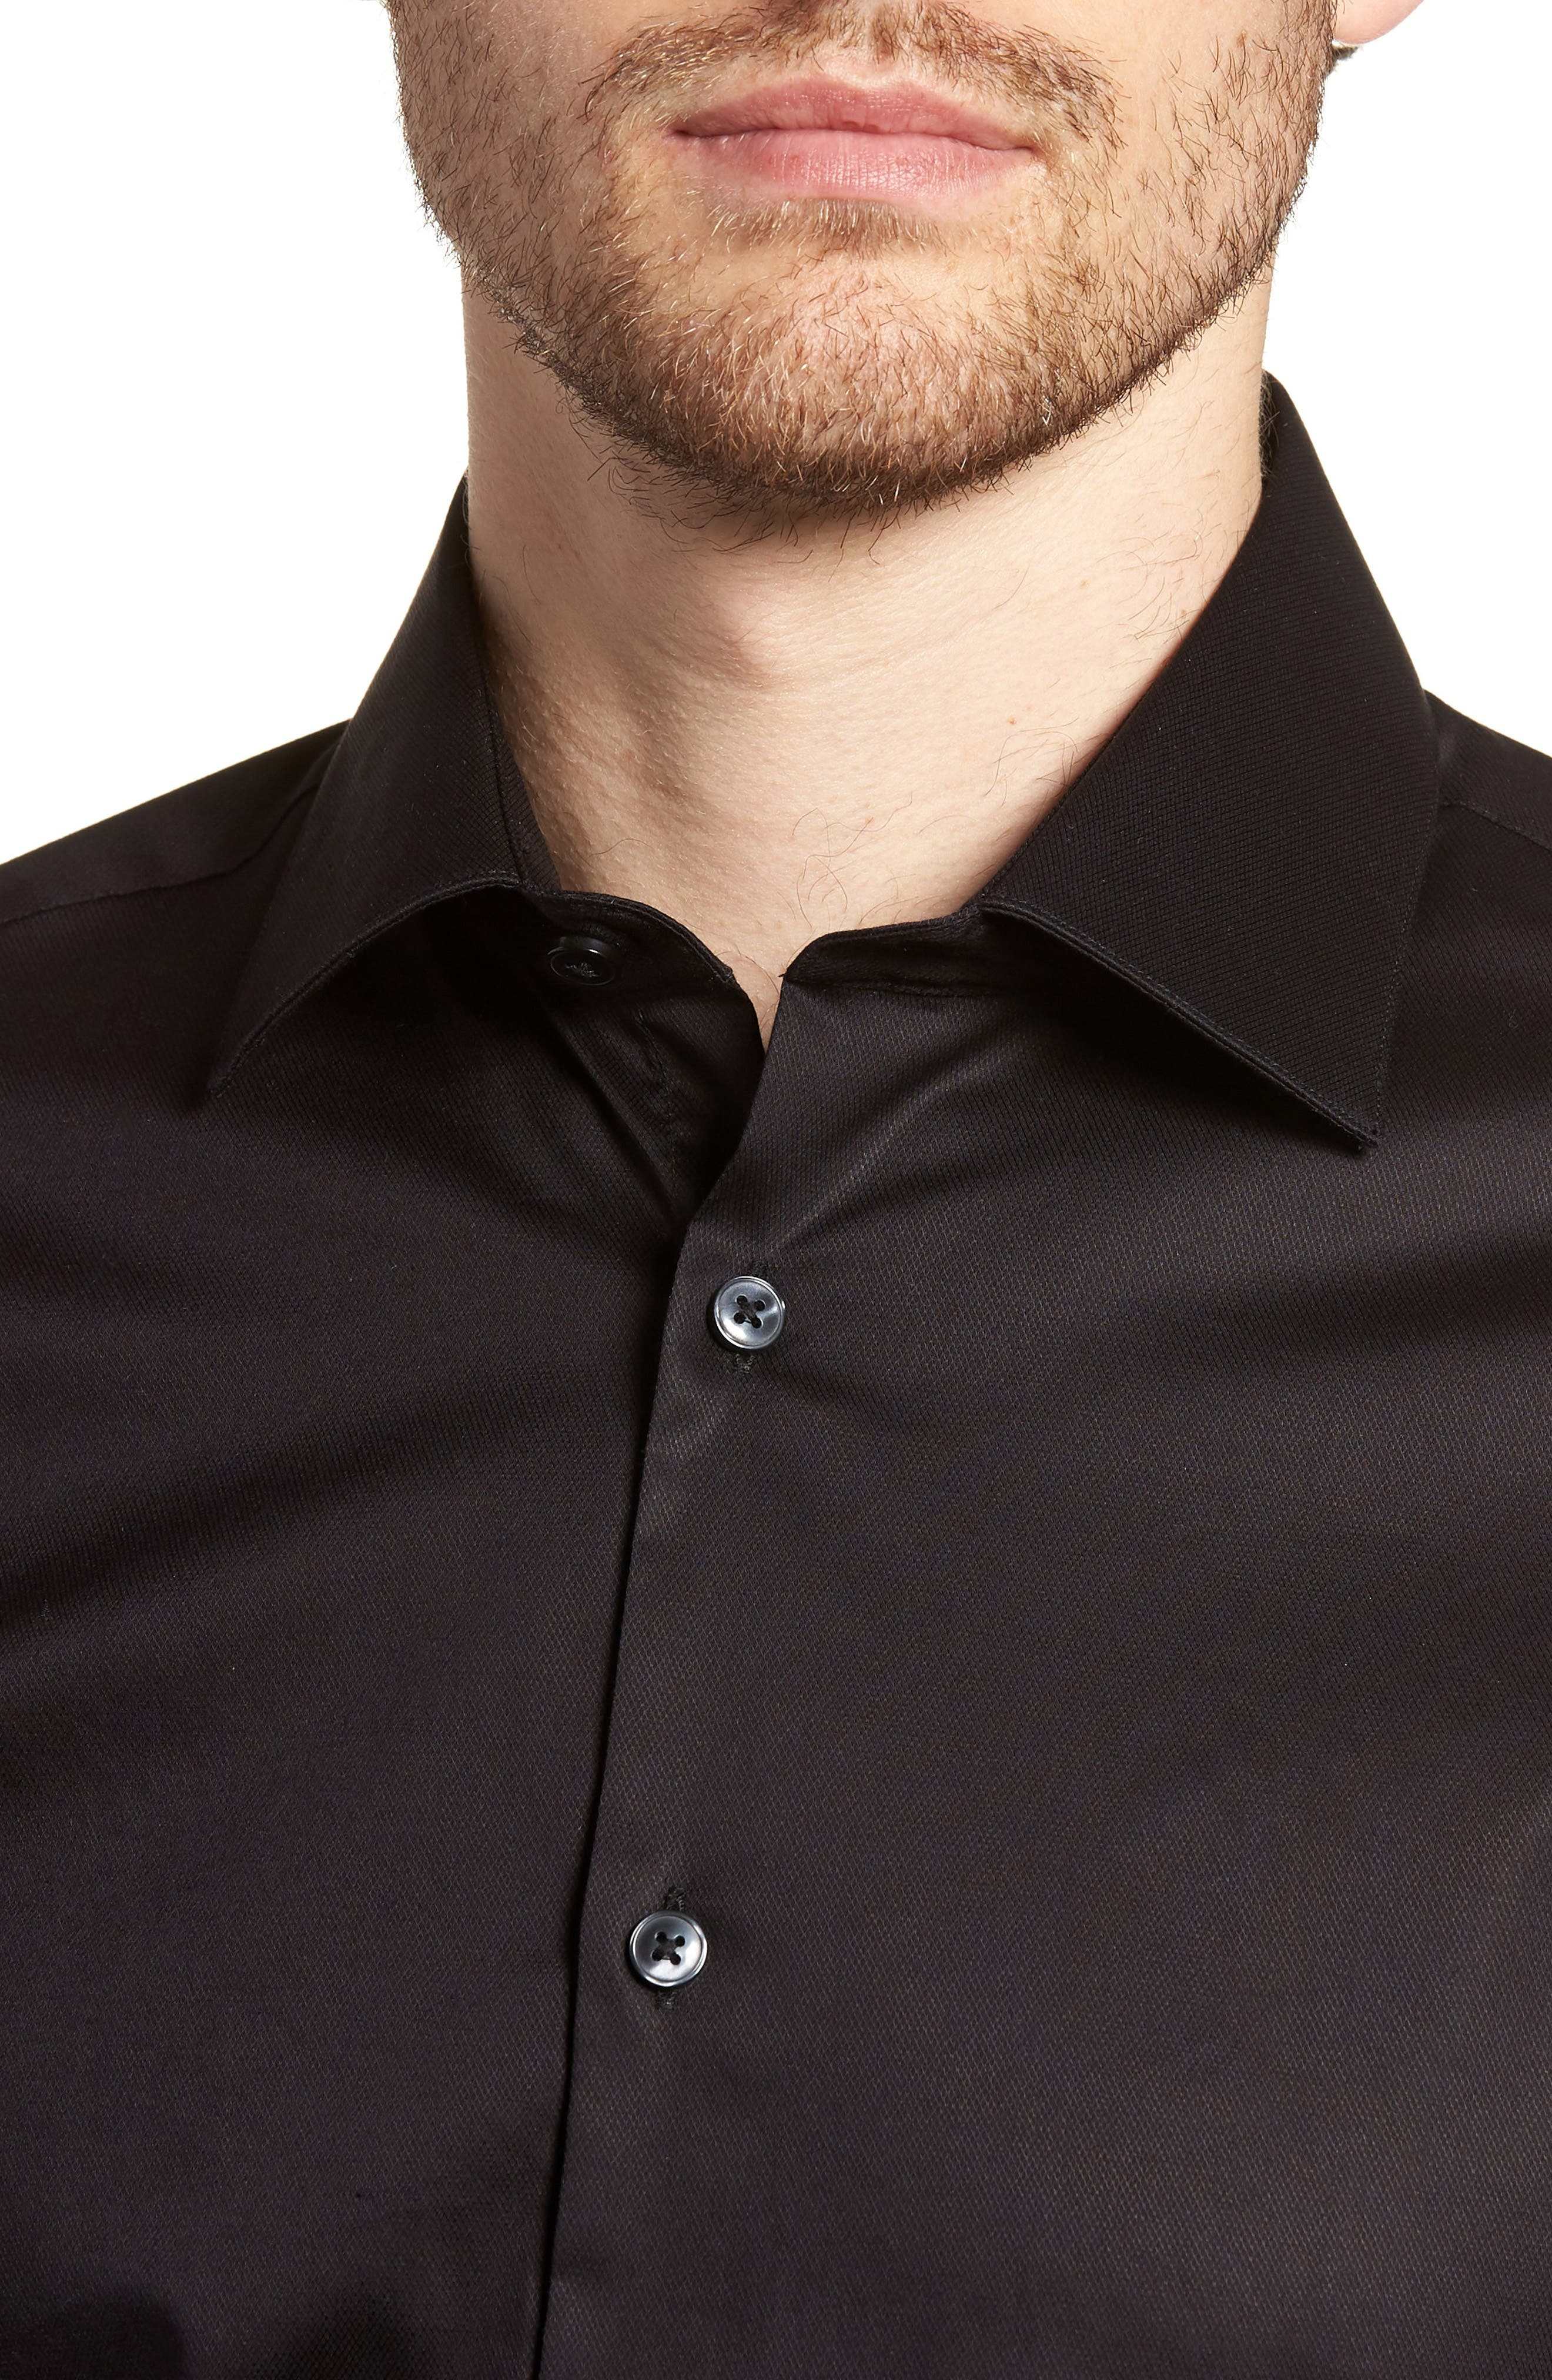 Slim Fit Stretch Solid Dress Shirt,                             Alternate thumbnail 2, color,                             BLACK